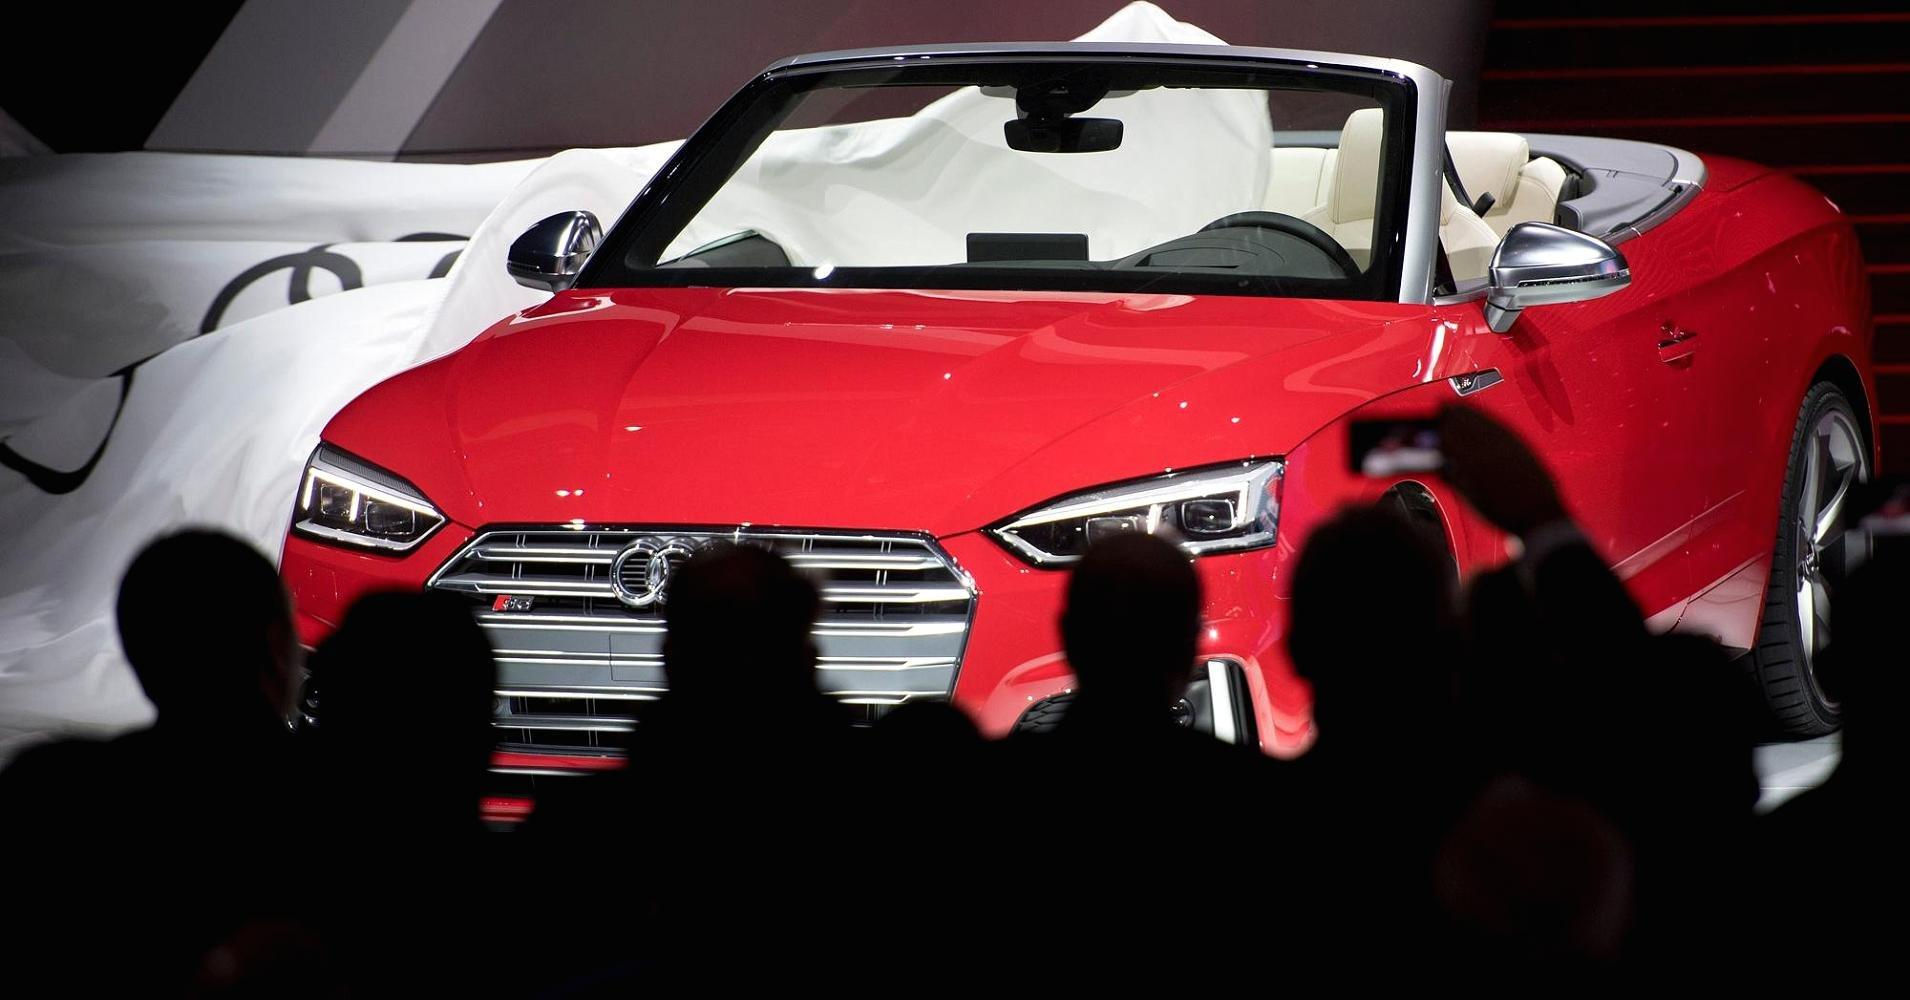 Foreign Brands Dominate Consumer Reports Top Autos List